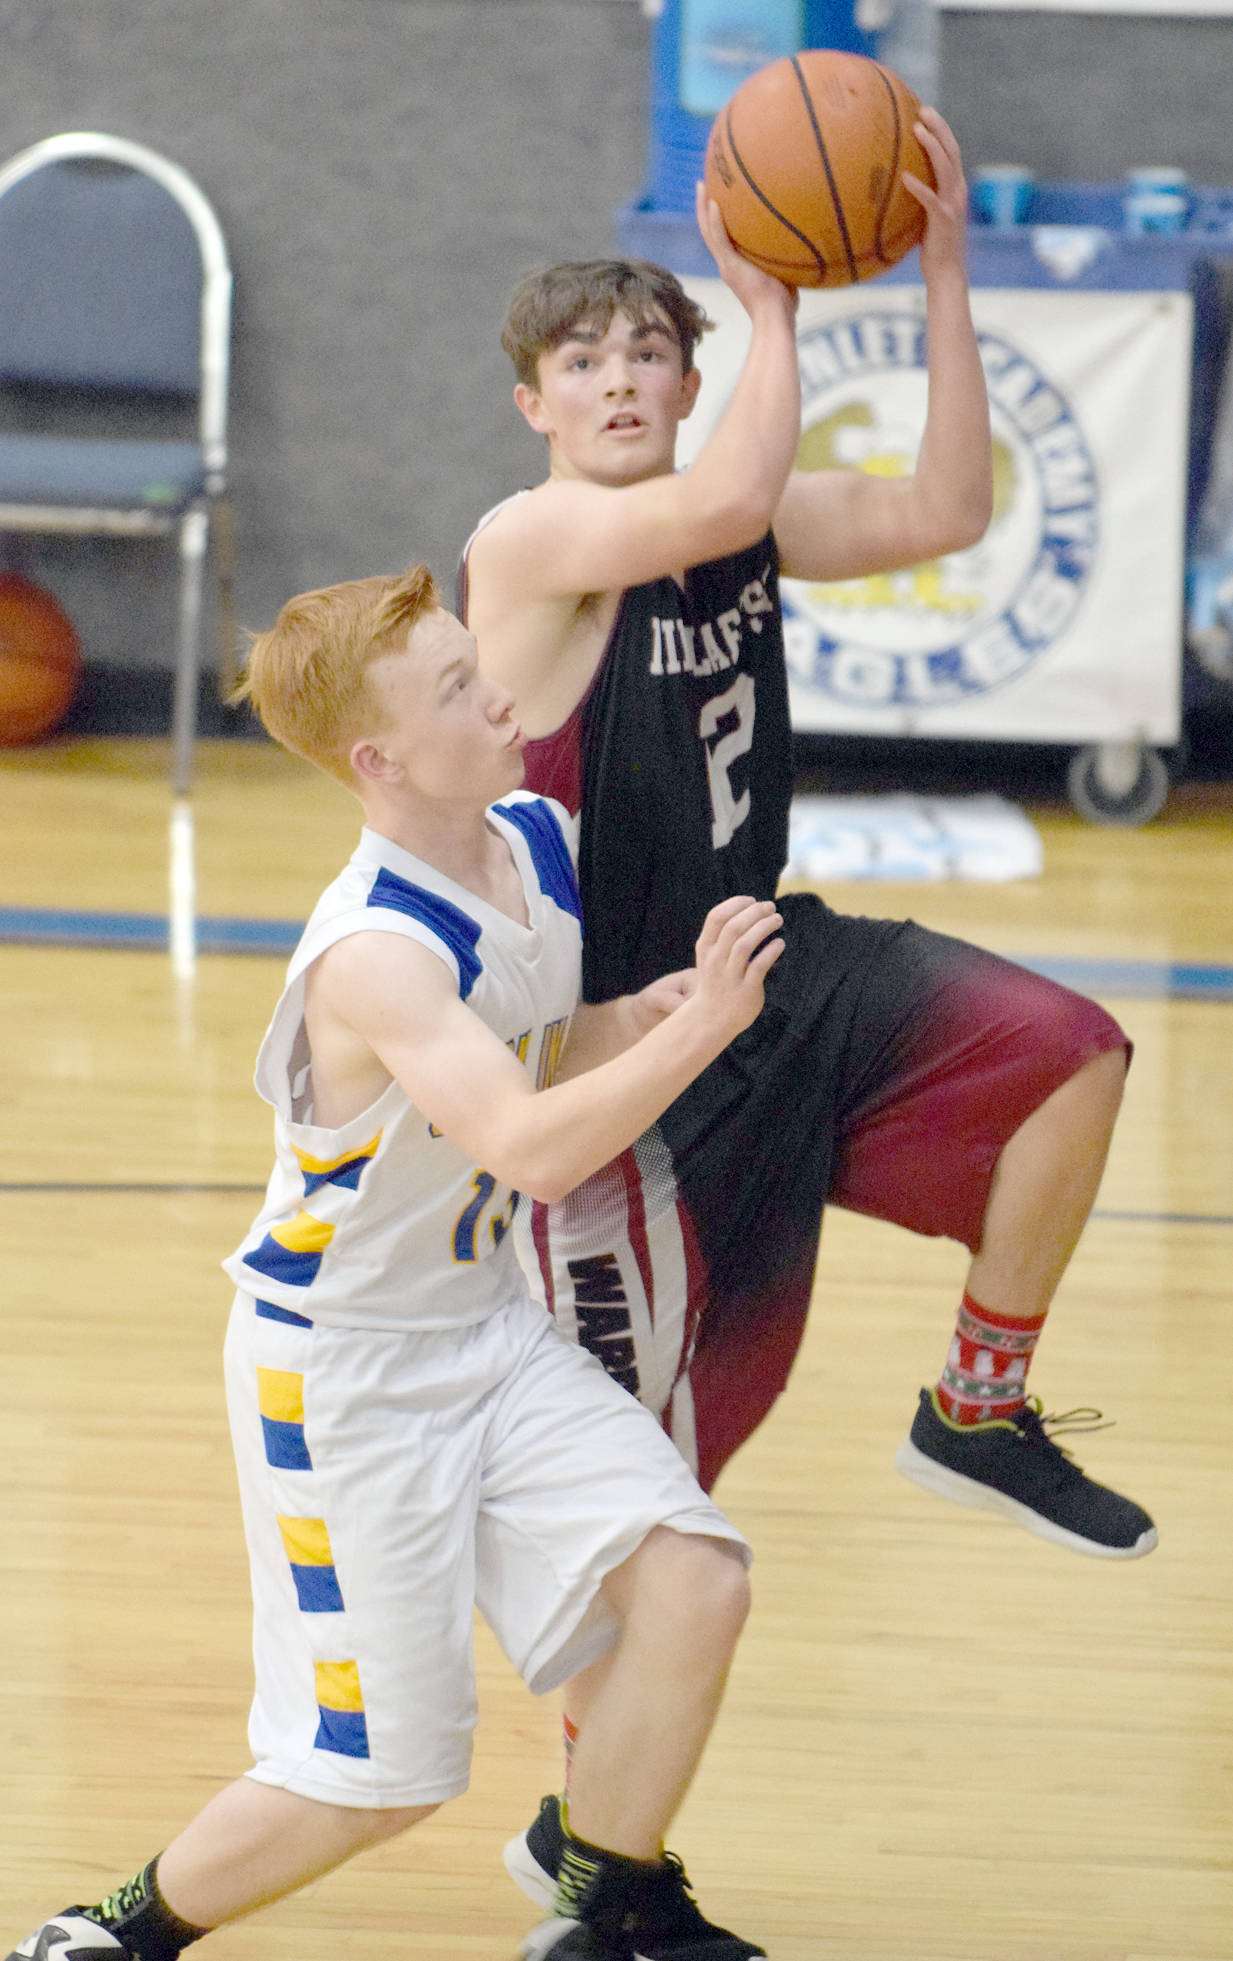 Nikolaevsk's Chris Jackson drives on Cook Inlet Academy's Lucas Cragg on Friday, Dec. 15, 2017, at Cook Inlet Academy. (Photo by Jeff Helminiak/Peninsula Clarion)